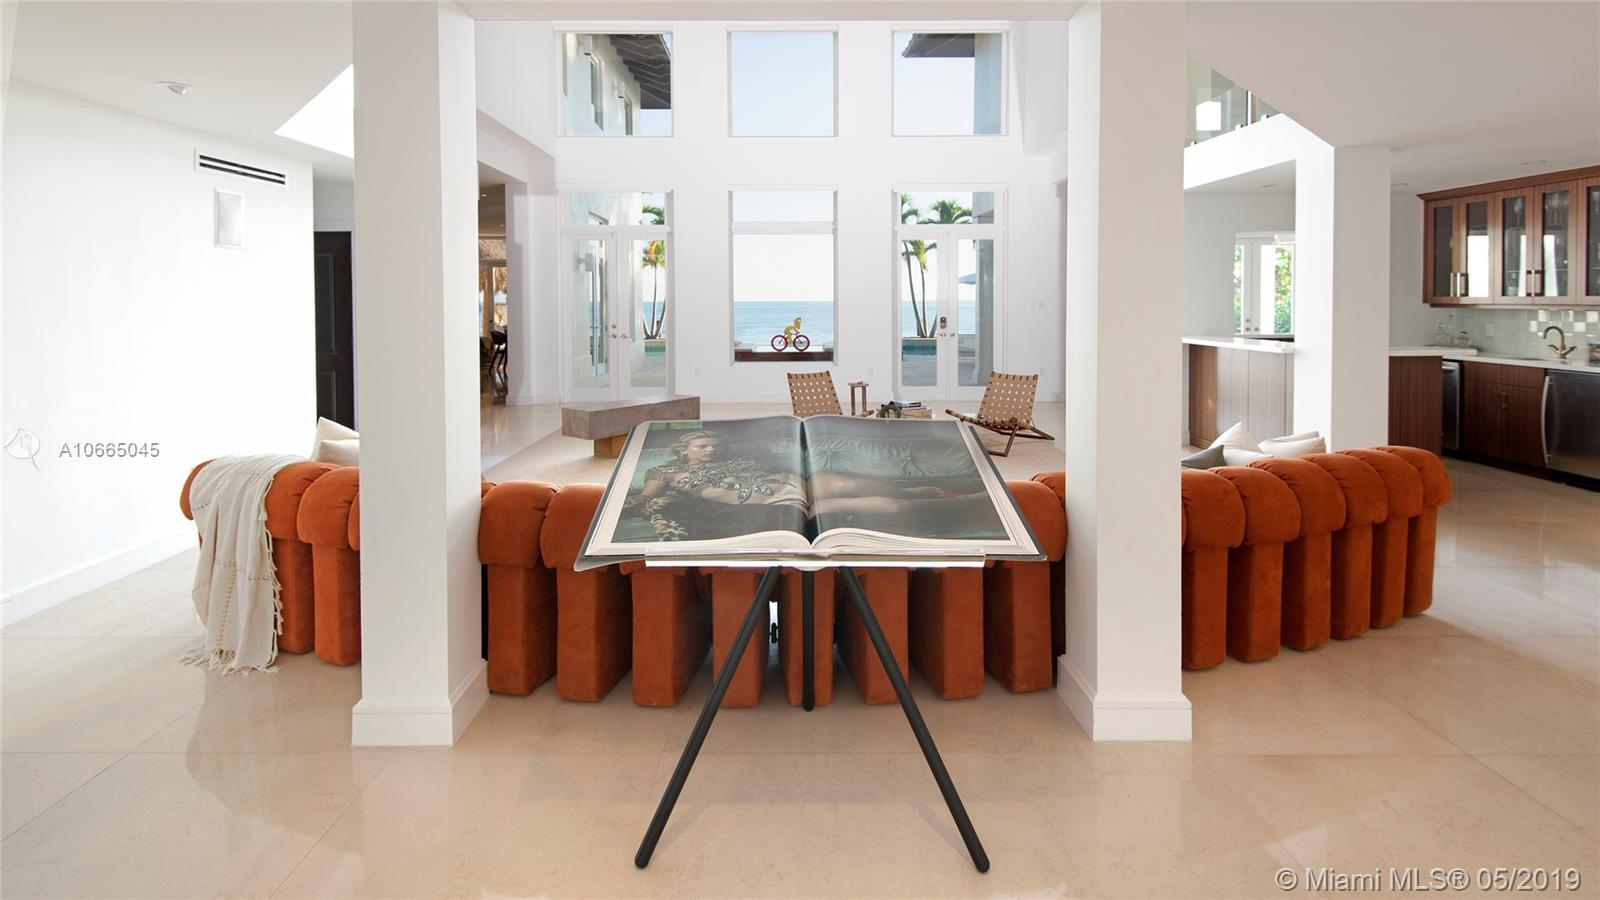 Completely Remodeled Home On Mashta Island In Key Biscayne. Walk In To Breathtaking Water Views. This Home Features 6 Bedrooms, 5.5 Bathrooms, A Gourmet Kitchen With Top-Of-The-Line Appliances, Large Dining Room & Great Room With Full Bar, Office/Media Room, Separate Maid+Ógé¼Gäós Quarters, A Large Laundry Room, And A Master Suite With Ocean Views. This House Has The Perfect Setting To Enjoy The Beautiful Sunsets While Dipping In An Infinity Pool, Perfect For Entertaining.